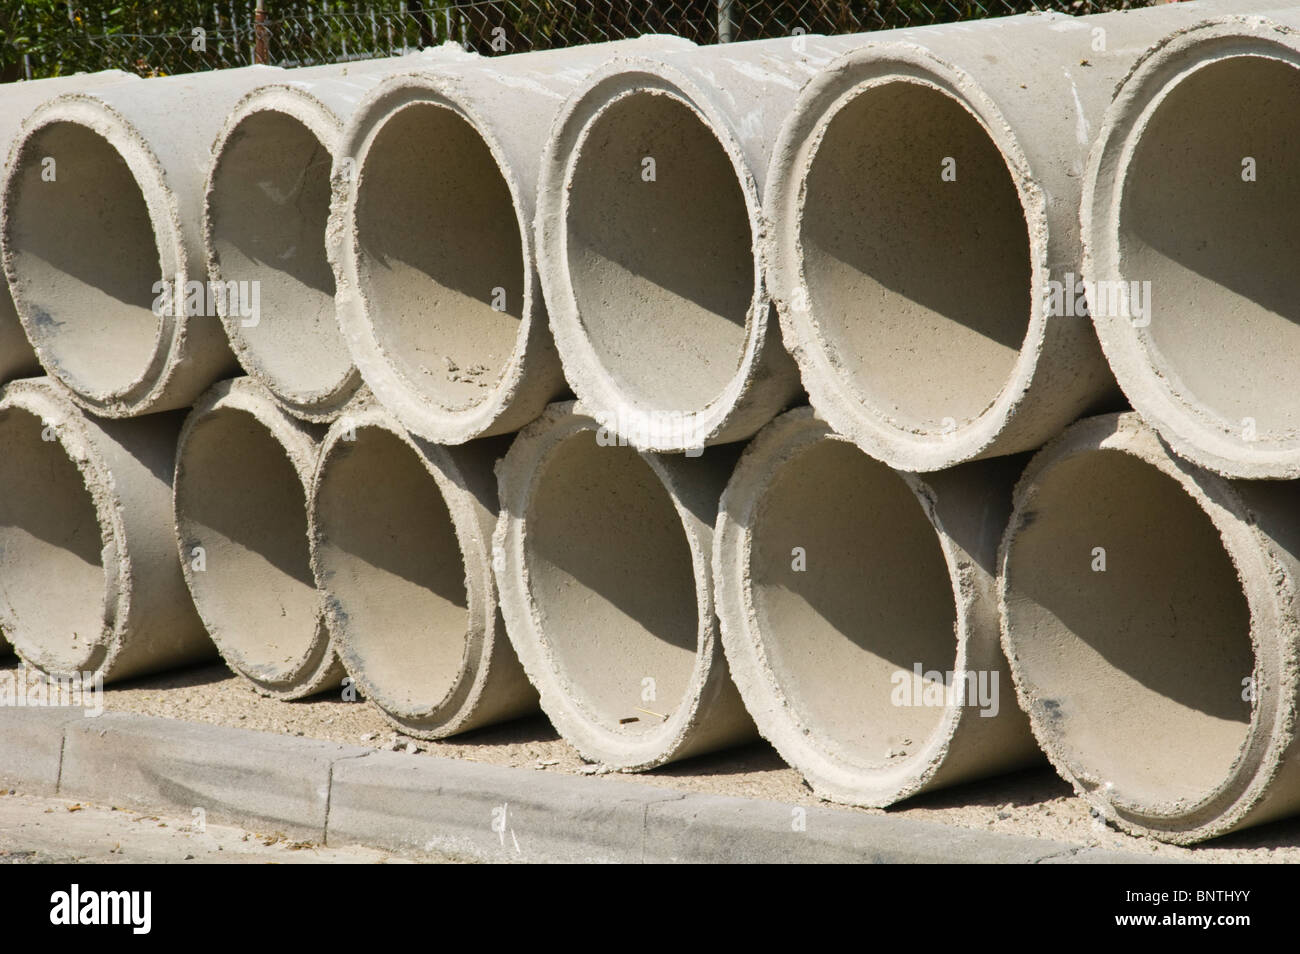 Concrete sewer pipes for construction project in Kassiopi on the Greek Mediterranean island of Corfu Greece GR - Stock Image